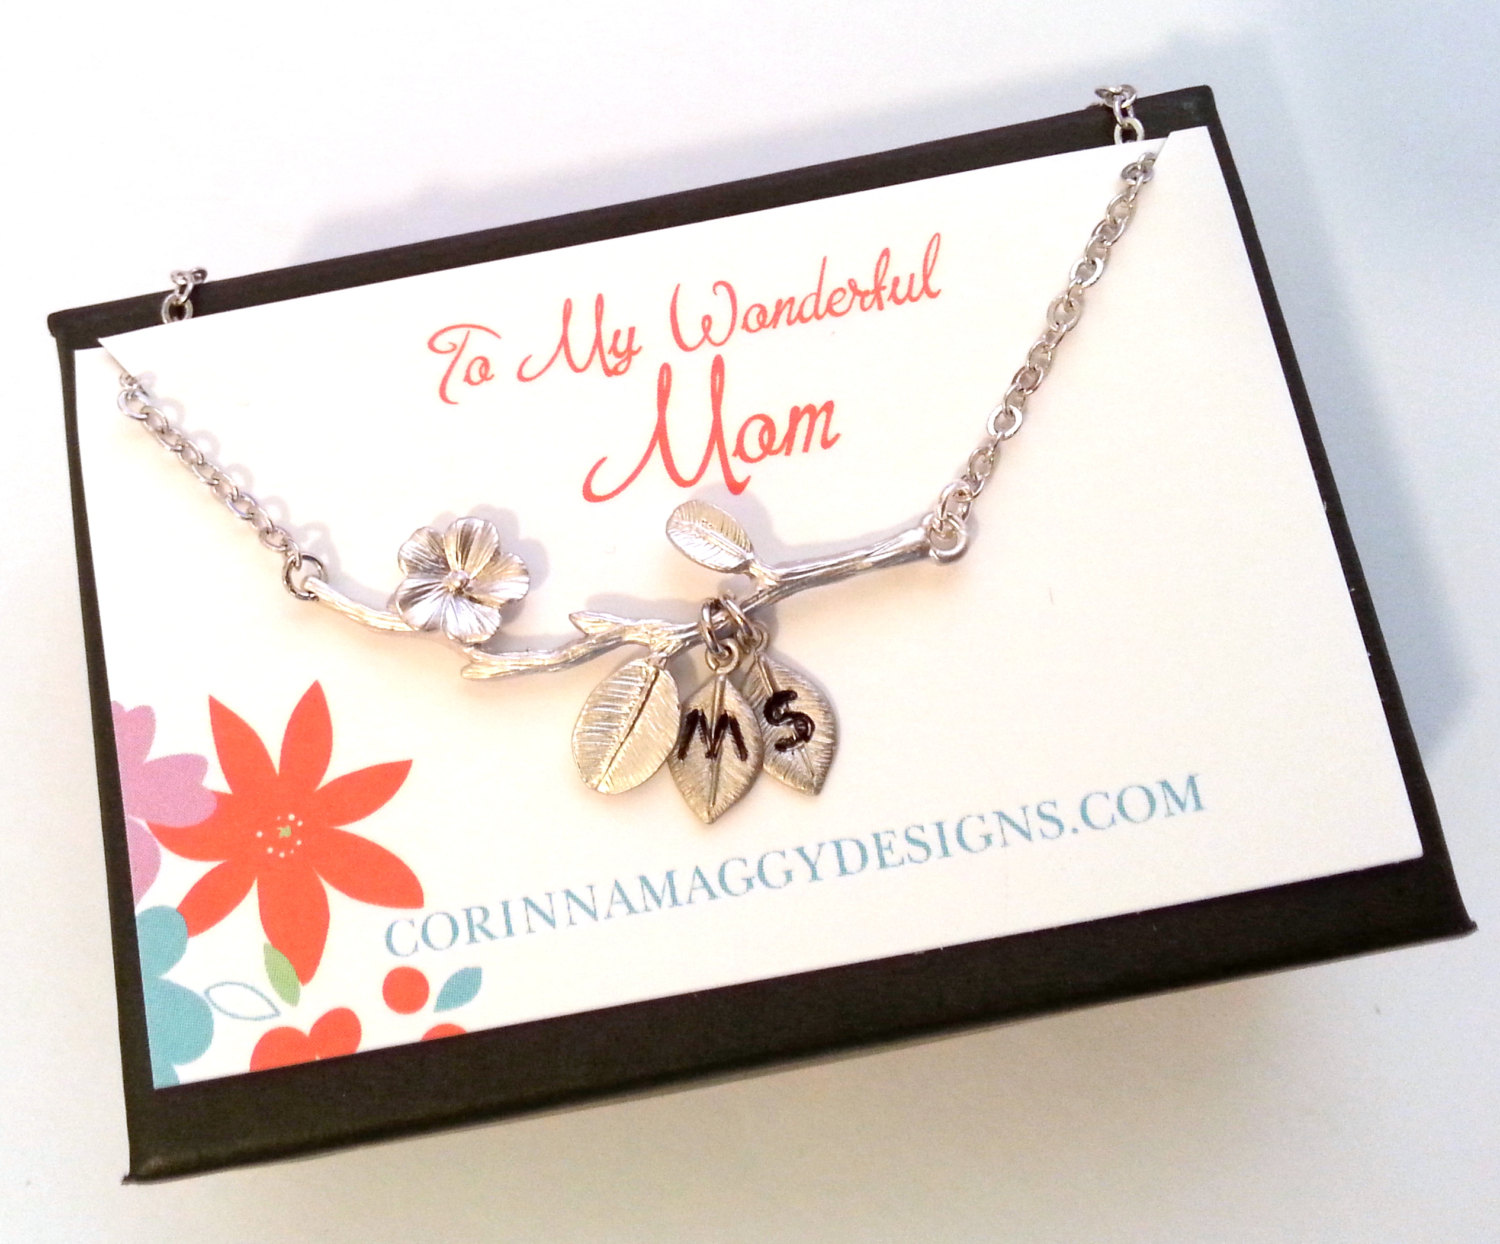 twig branch necklace for mother of the bride by corinna maggy designs   Nature Inspired Wedding Ideas   http://wp.me/p1g0if-x0y